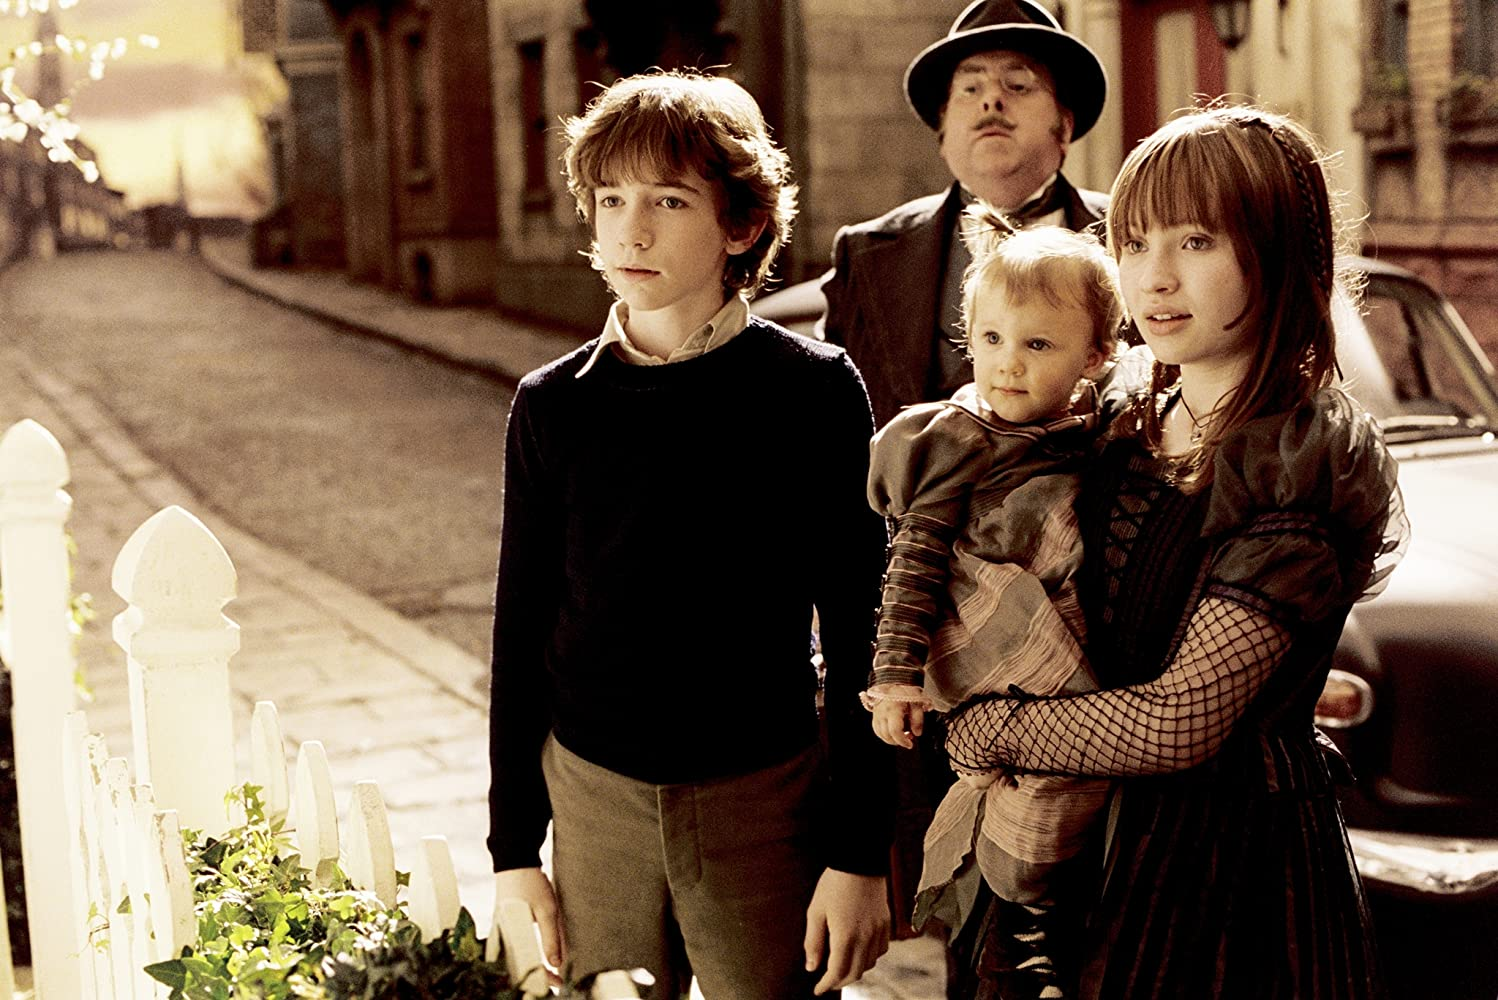 Timothy Spall, Liam Aiken, Emily Browning, and Shelby Hoffman in A Series of Unfortunate Events (2004)